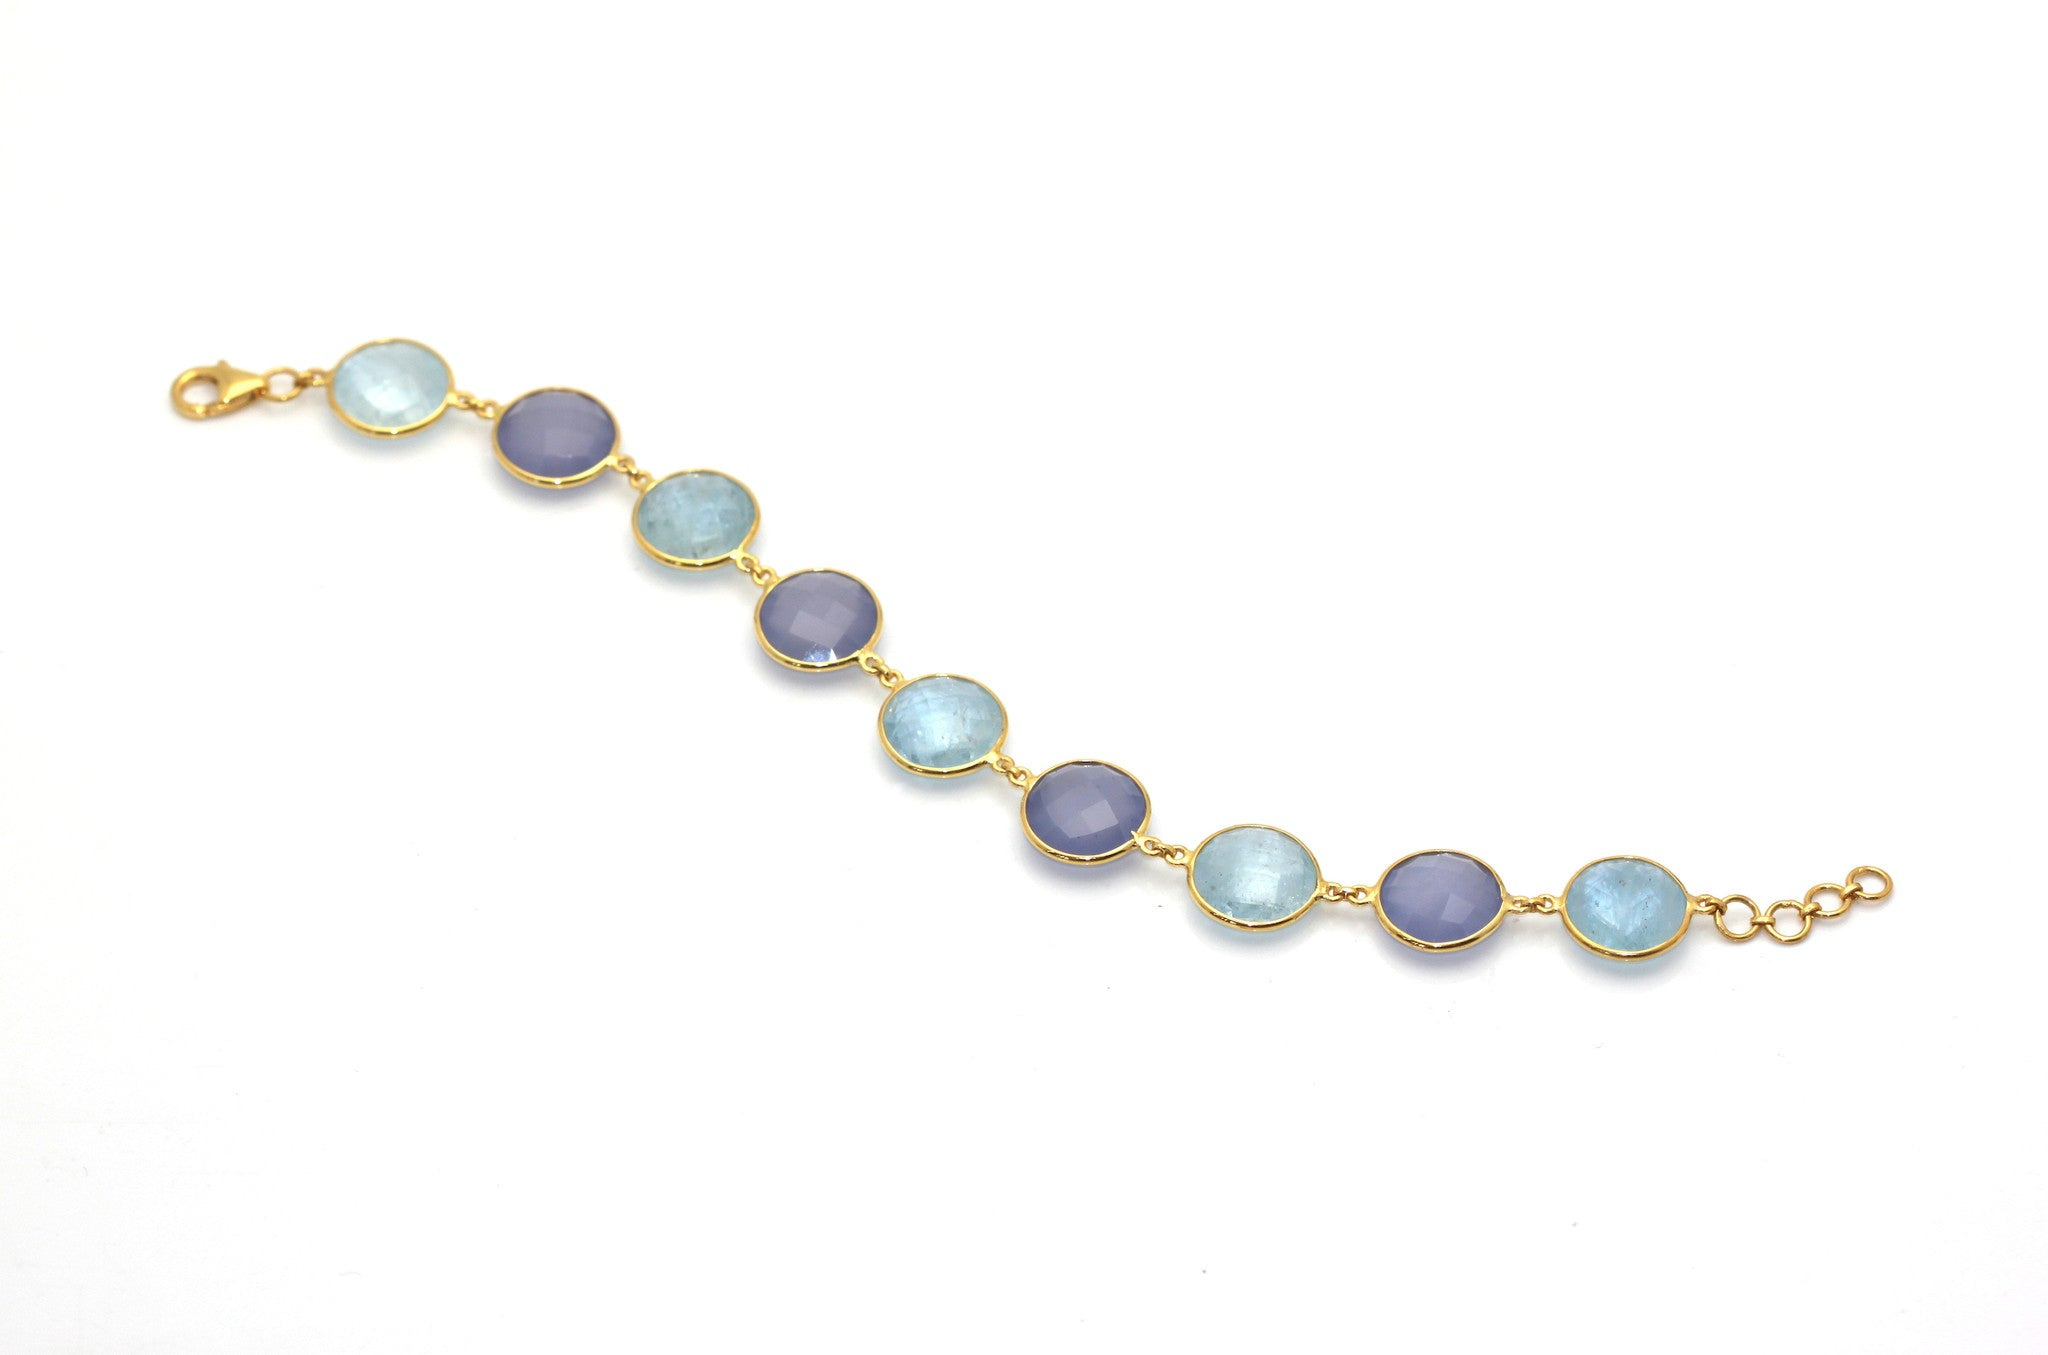 18k Yellow Gold Bracelet With Aquamarine & Calcidony